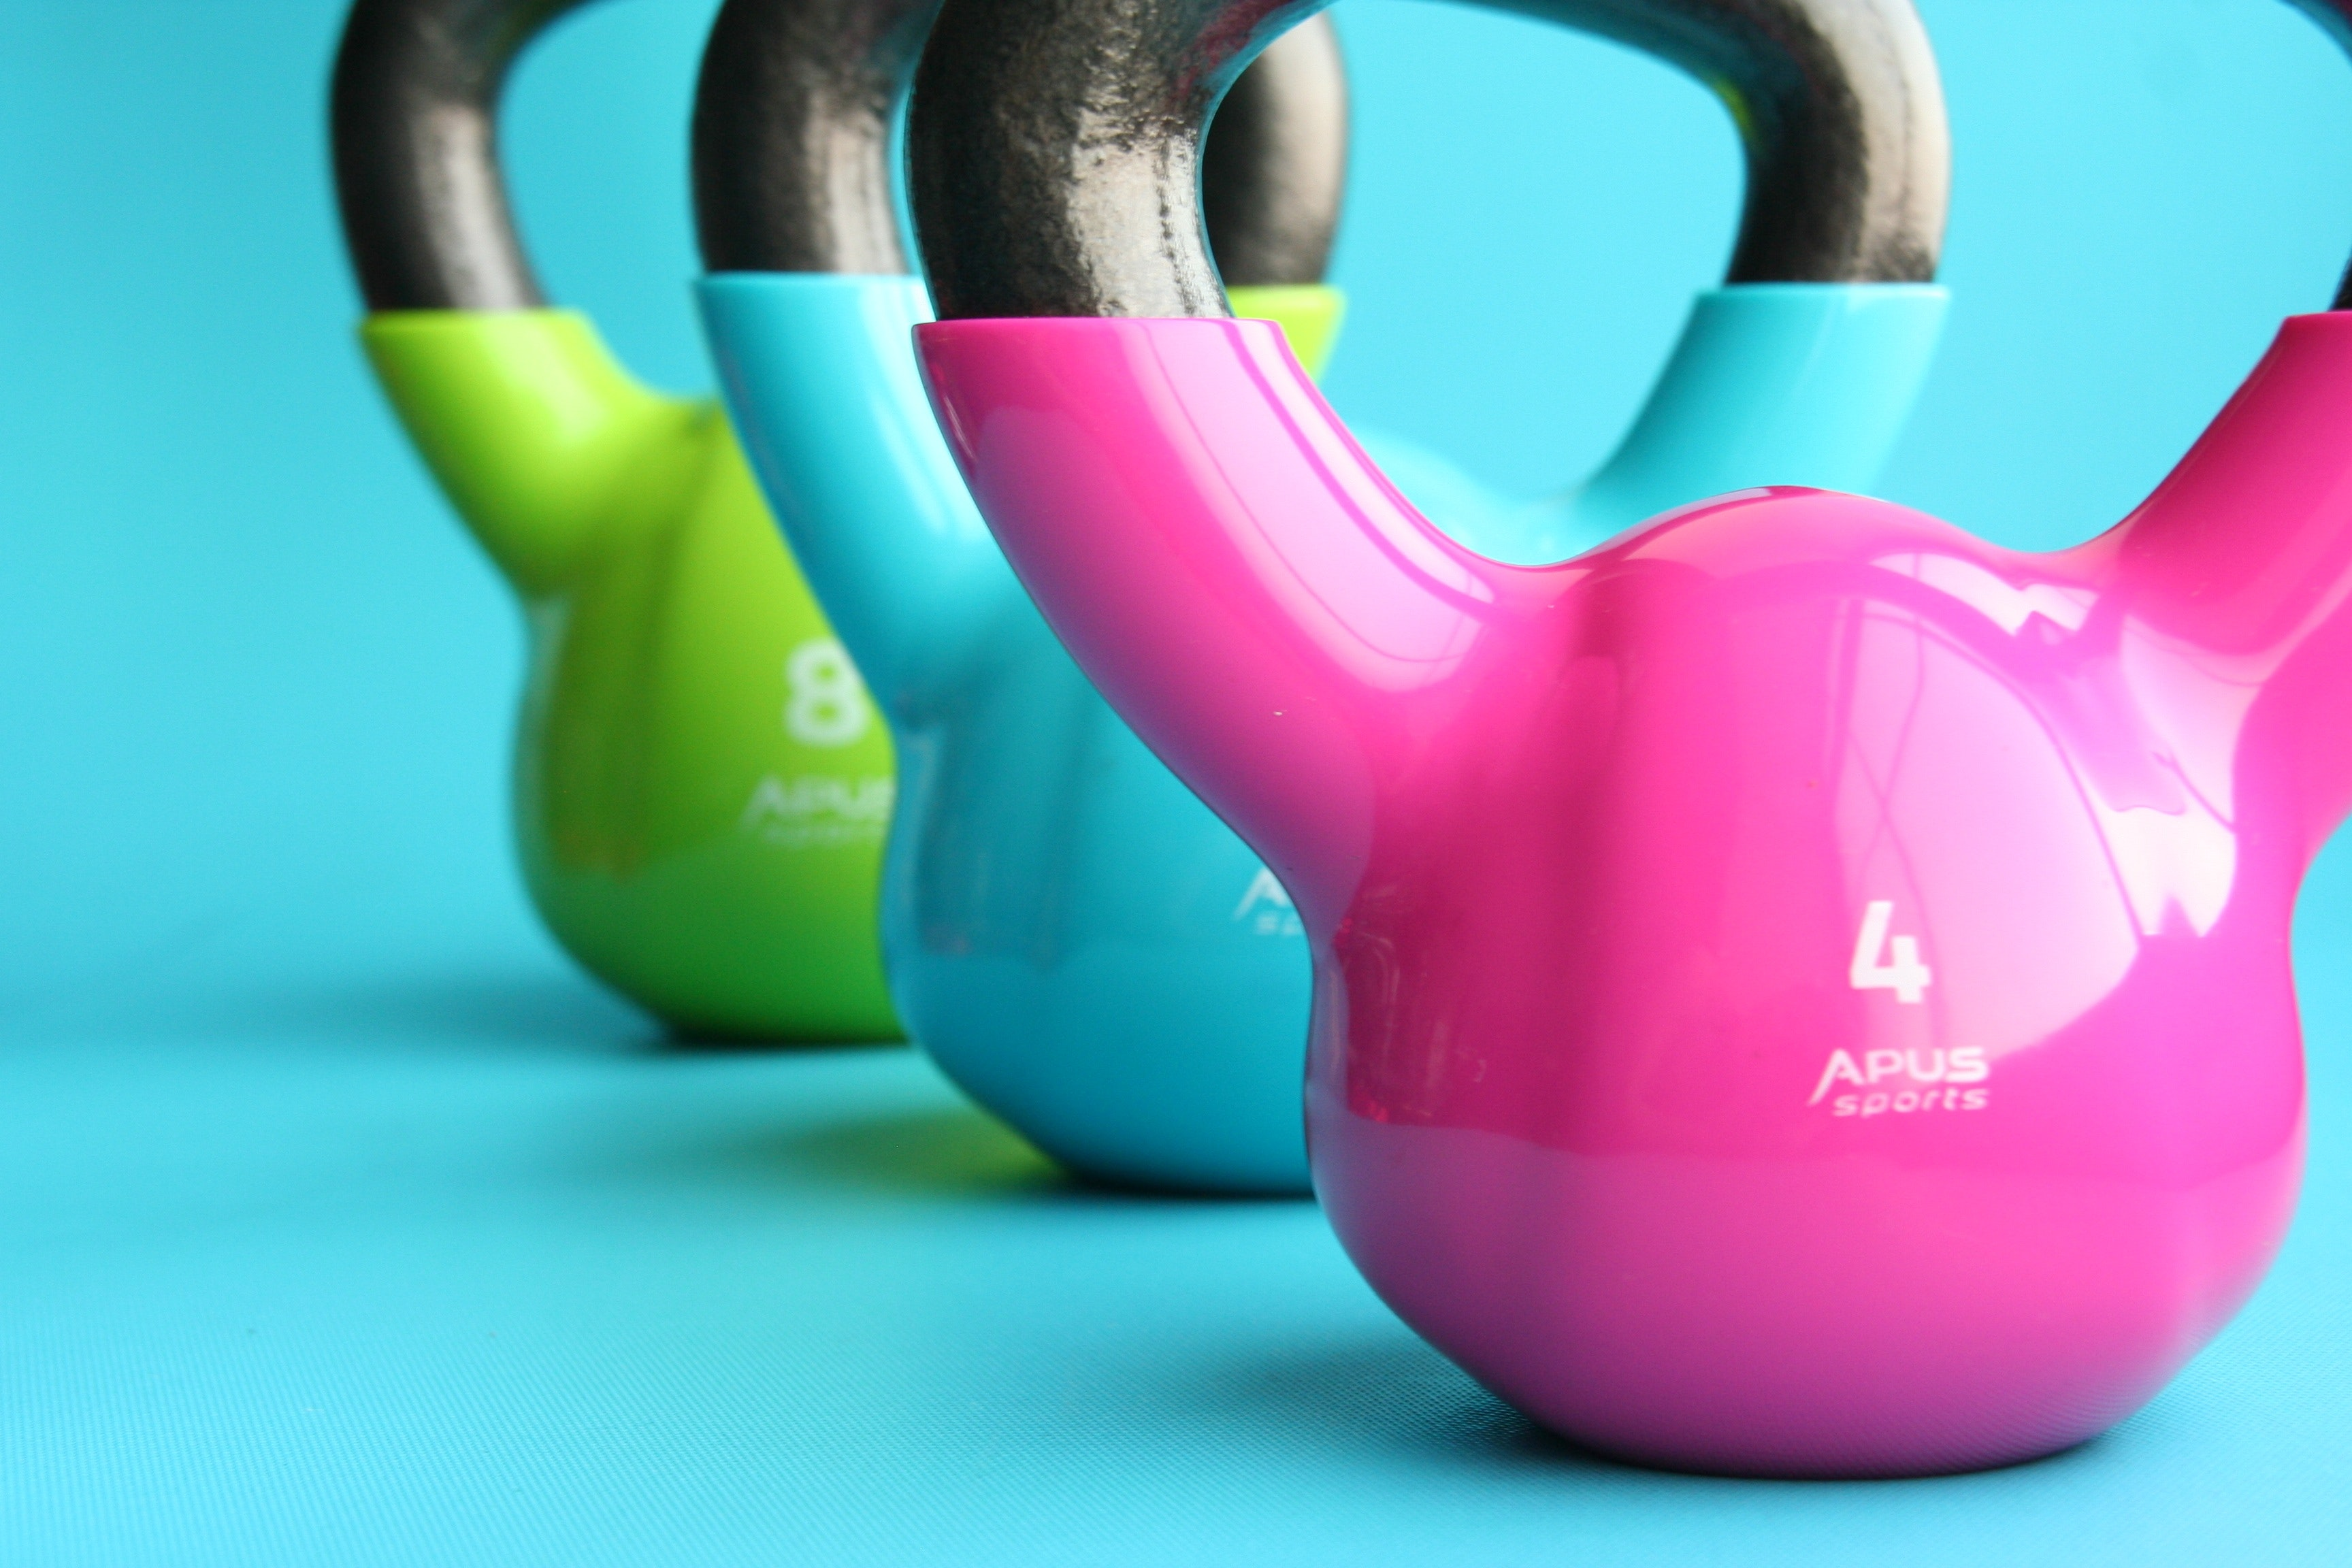 Pink, blue and green kettlebells on a blue surface